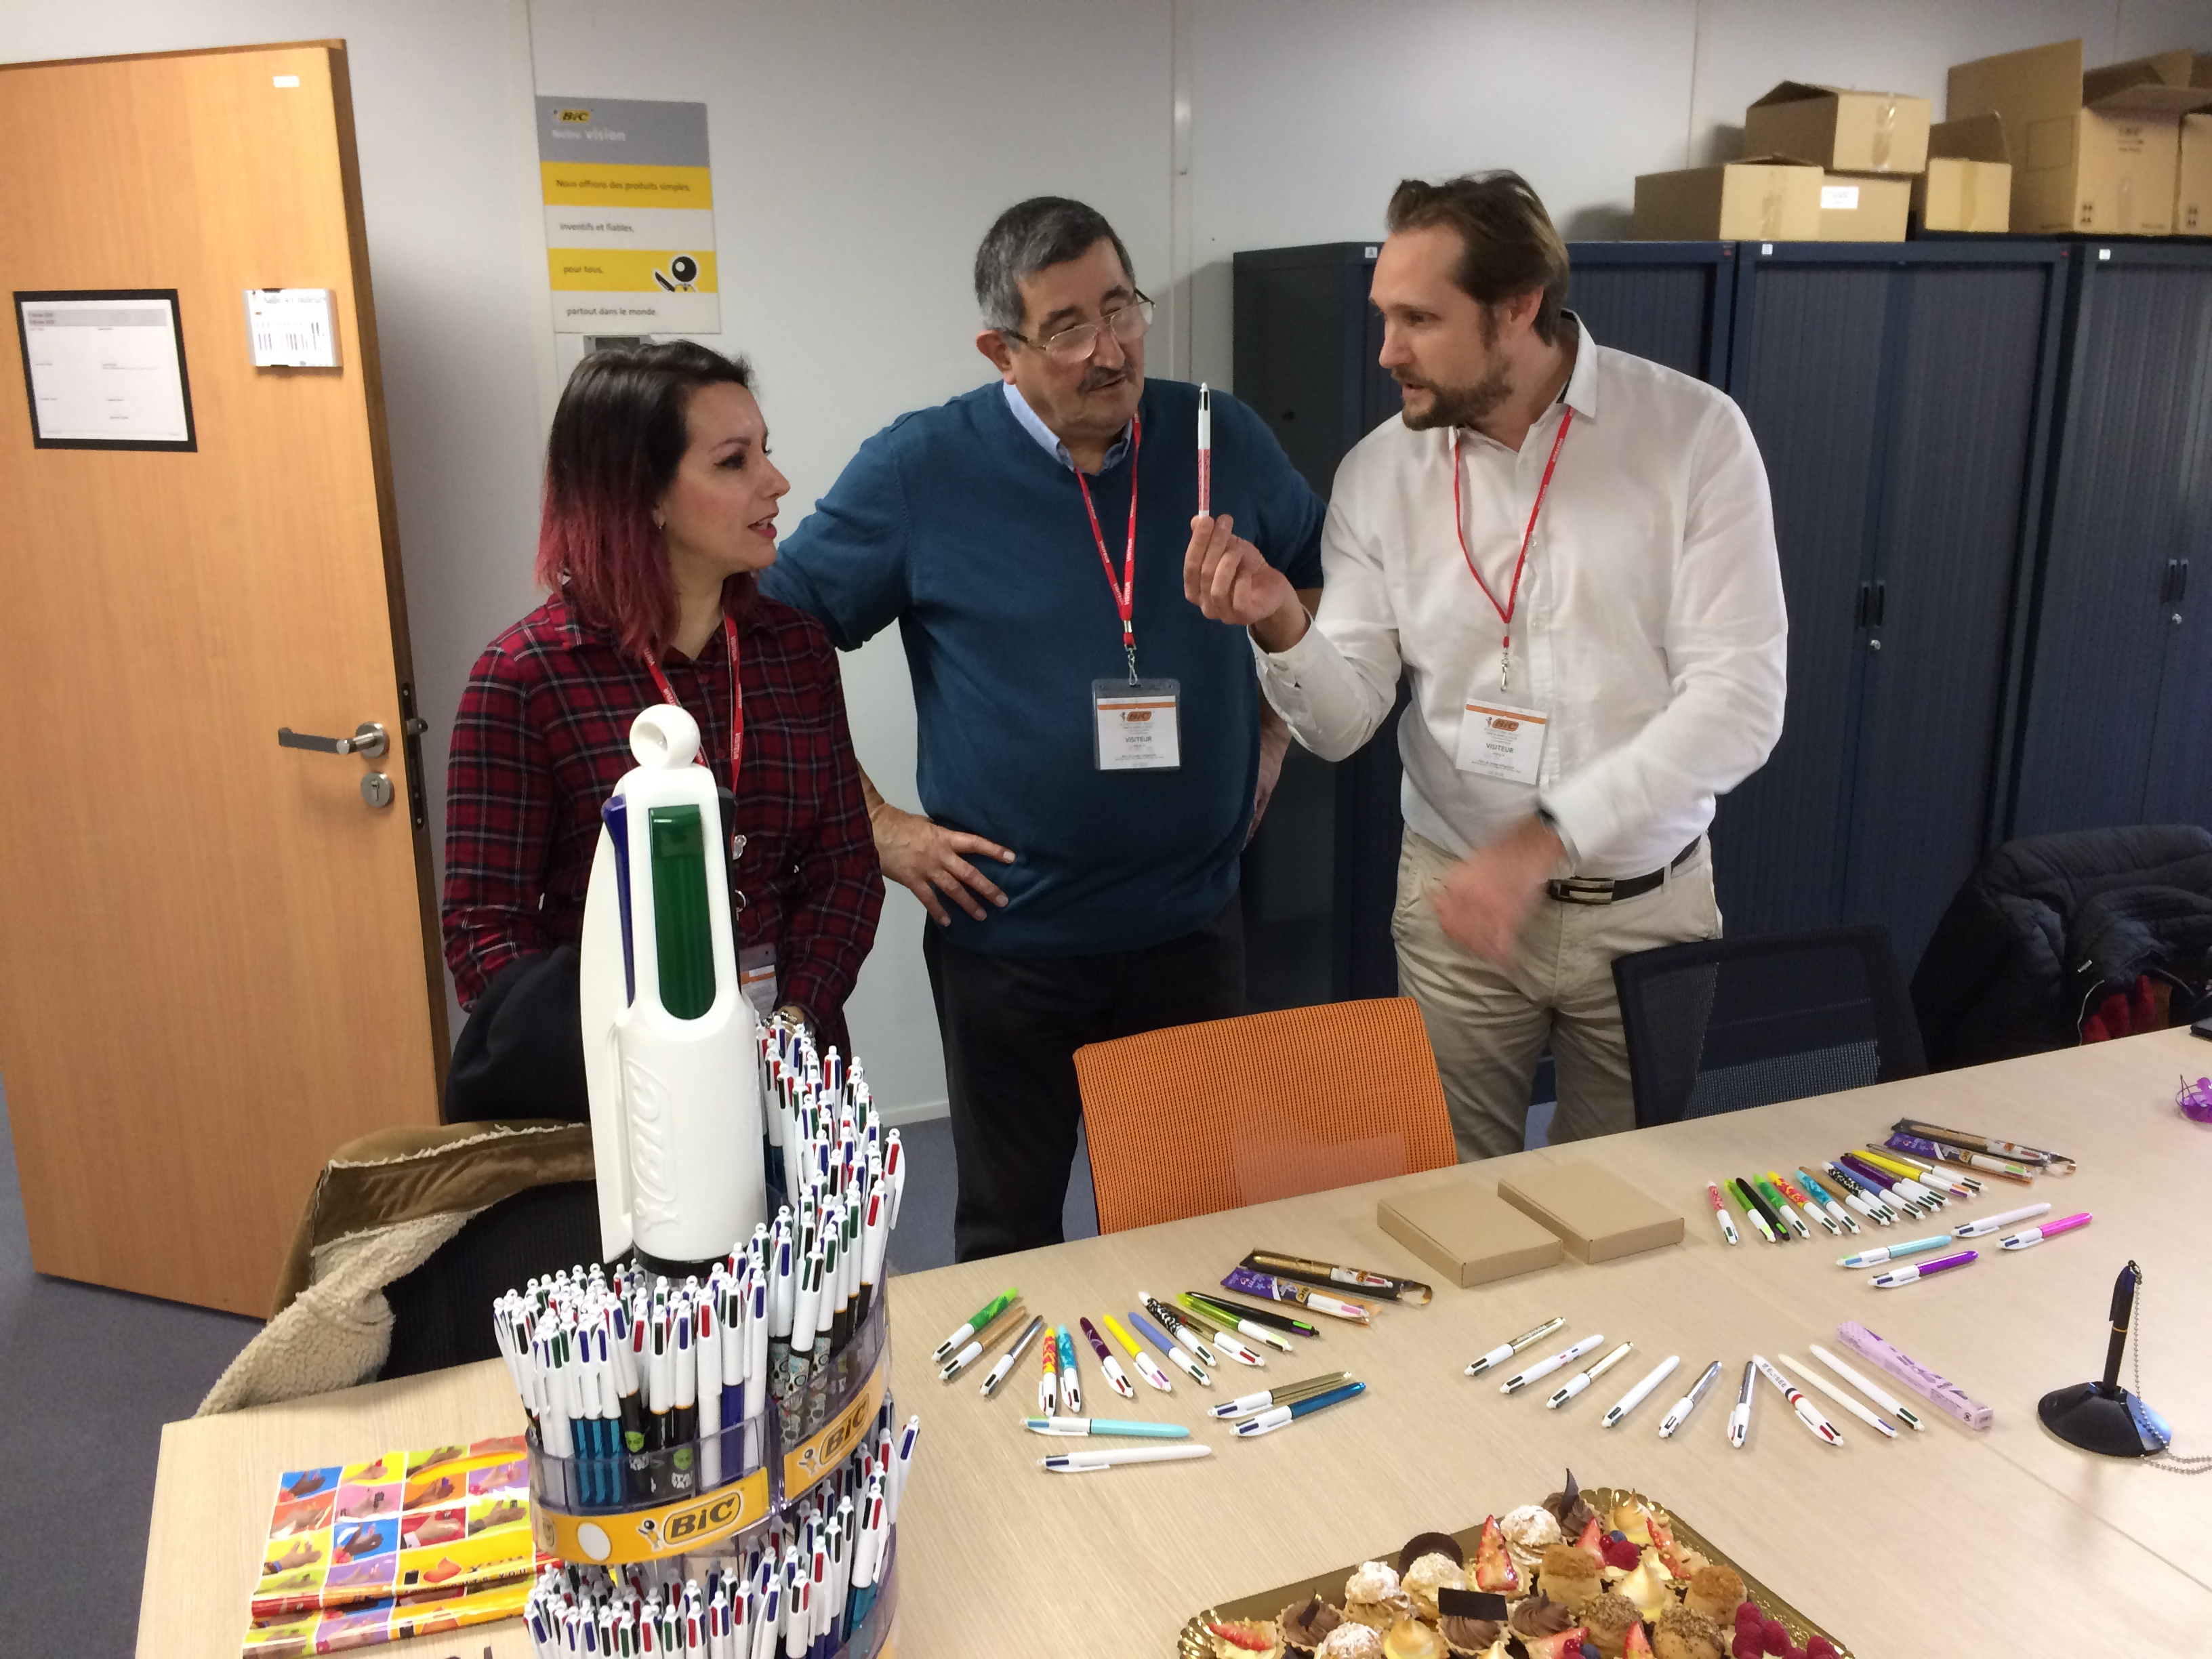 Celine and Patrick Dubois with BIC team member and display of 4-Color pens